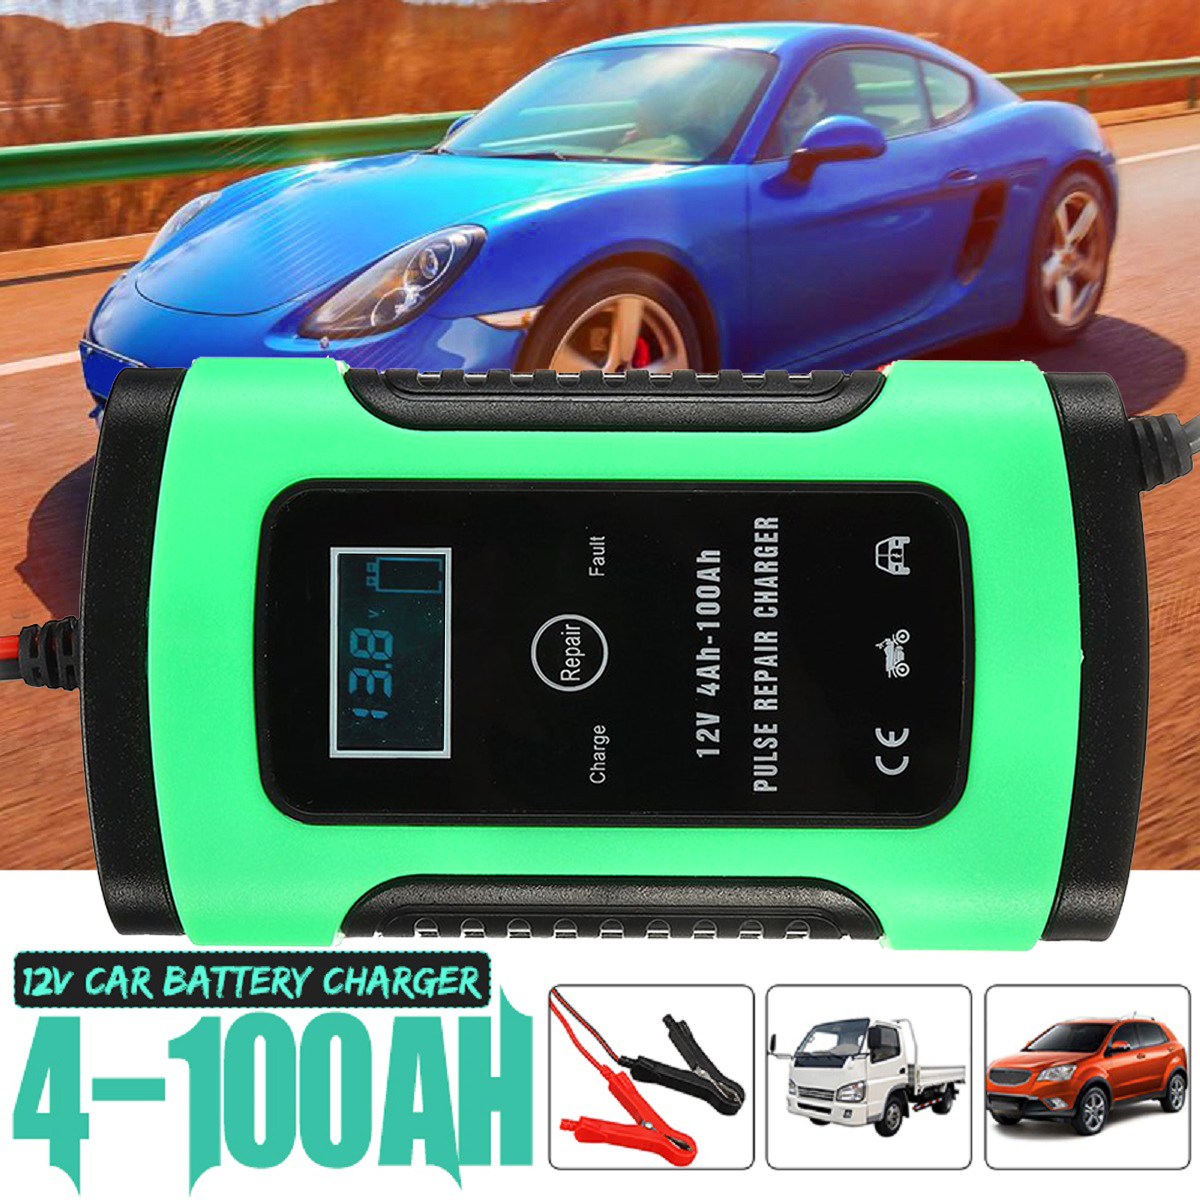 New 12V 5A 4-100Ah Auto <font><b>Car</b></font> Intelligent <font><b>Battery</b></font> <font><b>Charger</b></font> <font><b>Jump</b></font> <font><b>Starter</b></font> LCD Intelligent 100-240V Pulse Repair Type image